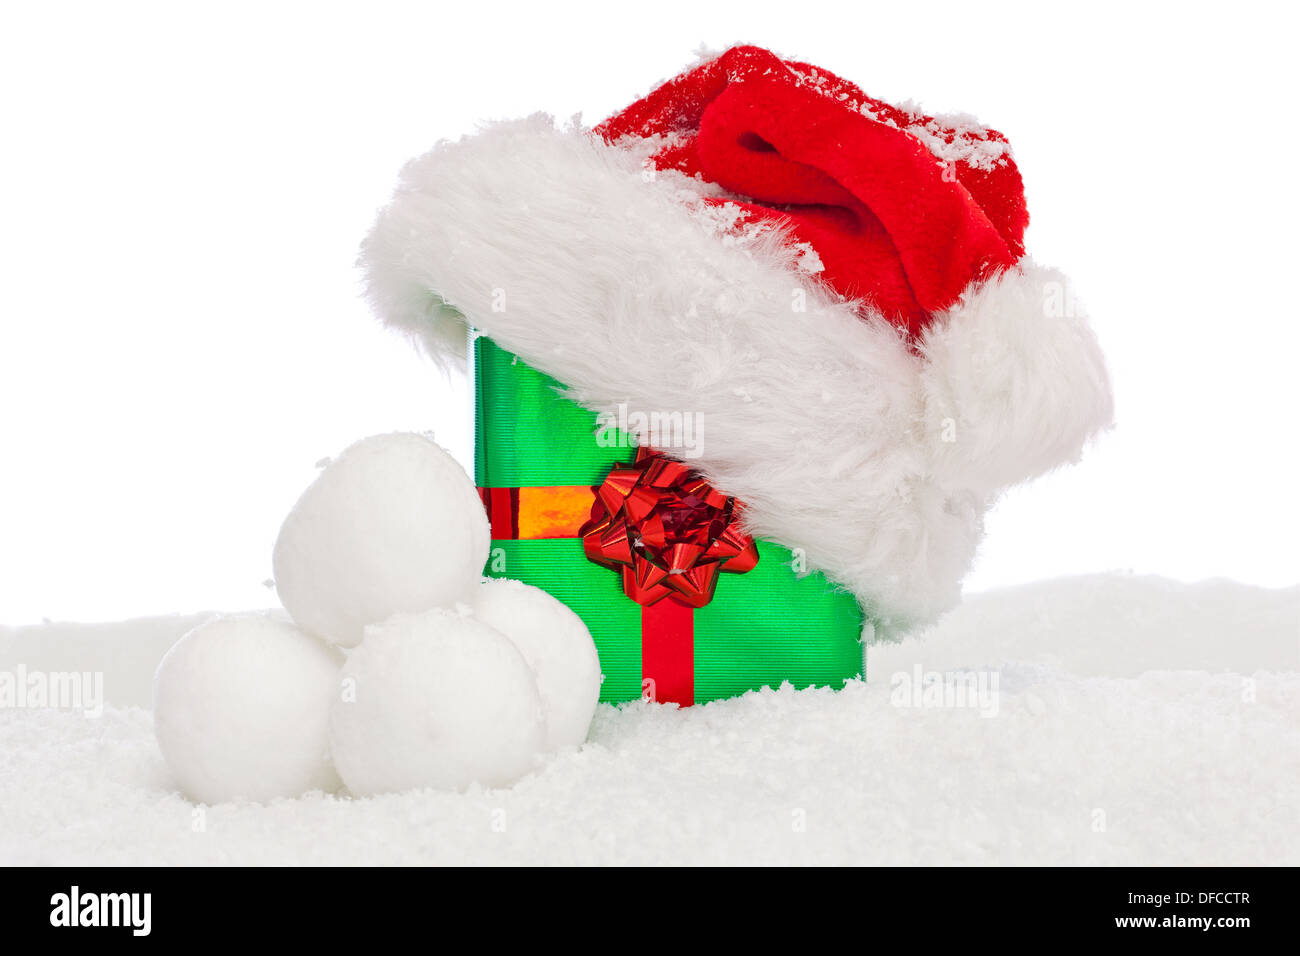 A Santa hat on top of a green gift wrapped Christmas present with ...